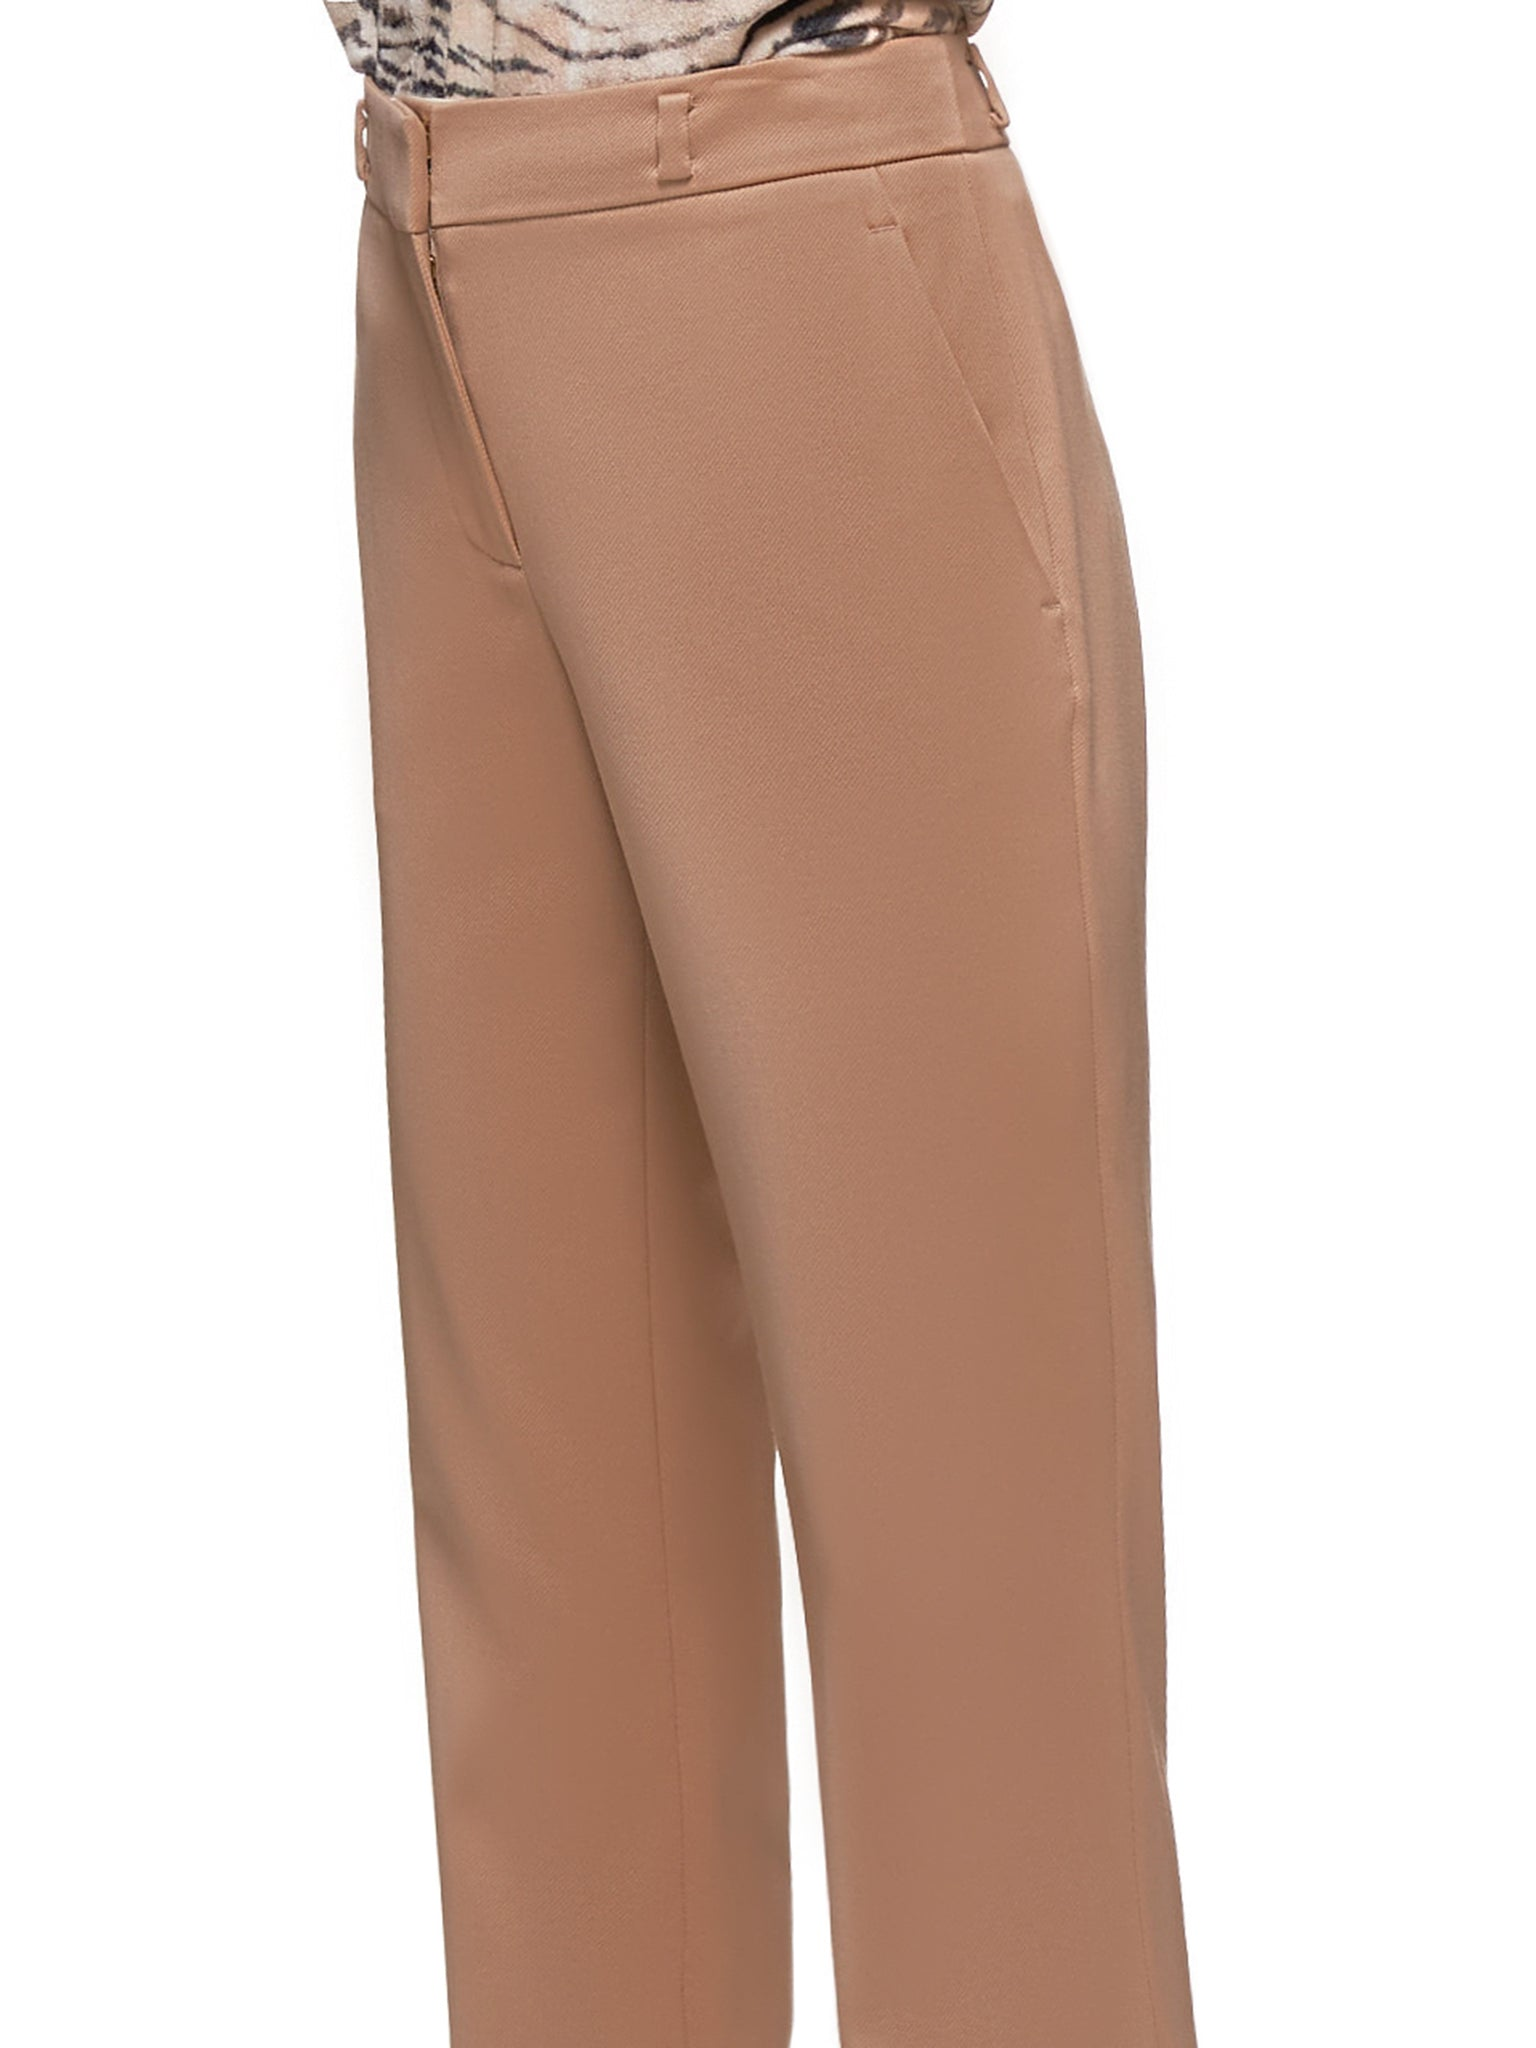 Nastya Slim Trousers (15PW6043-DUSTY-ROSE)